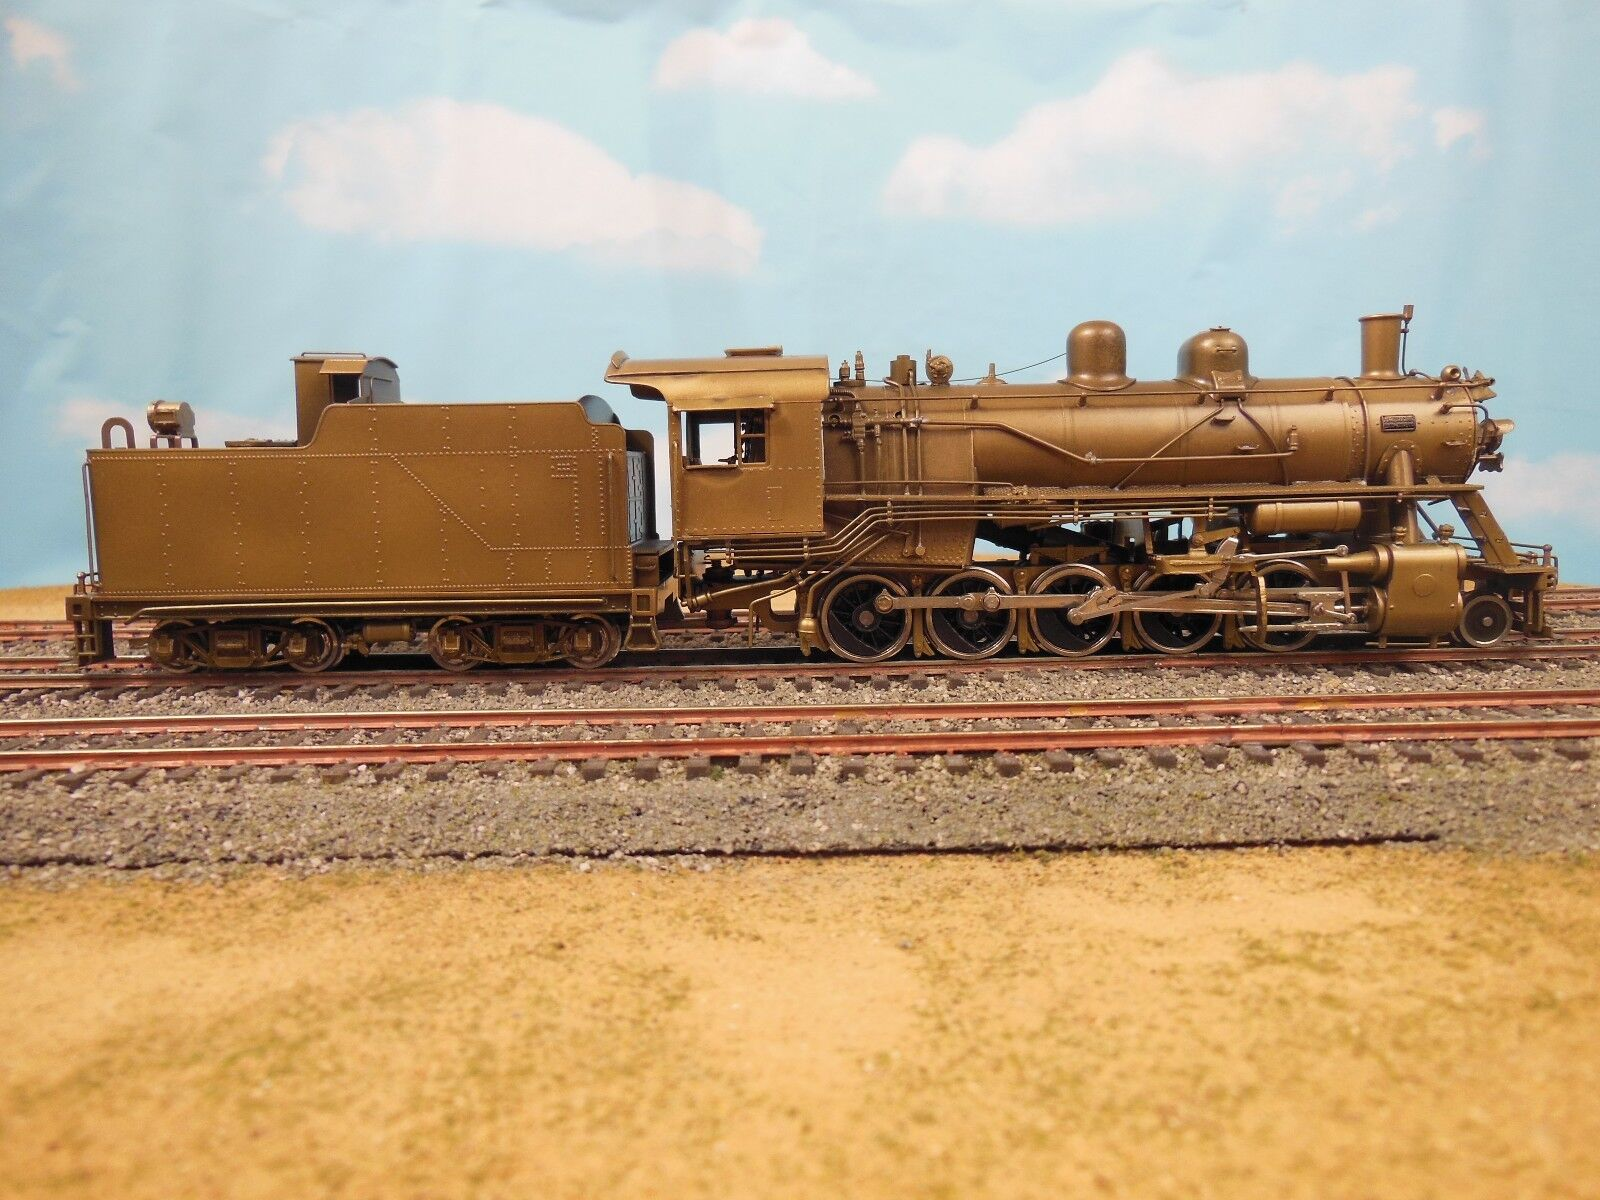 Die us - firsco - modelle 2-10-0 lokomotive